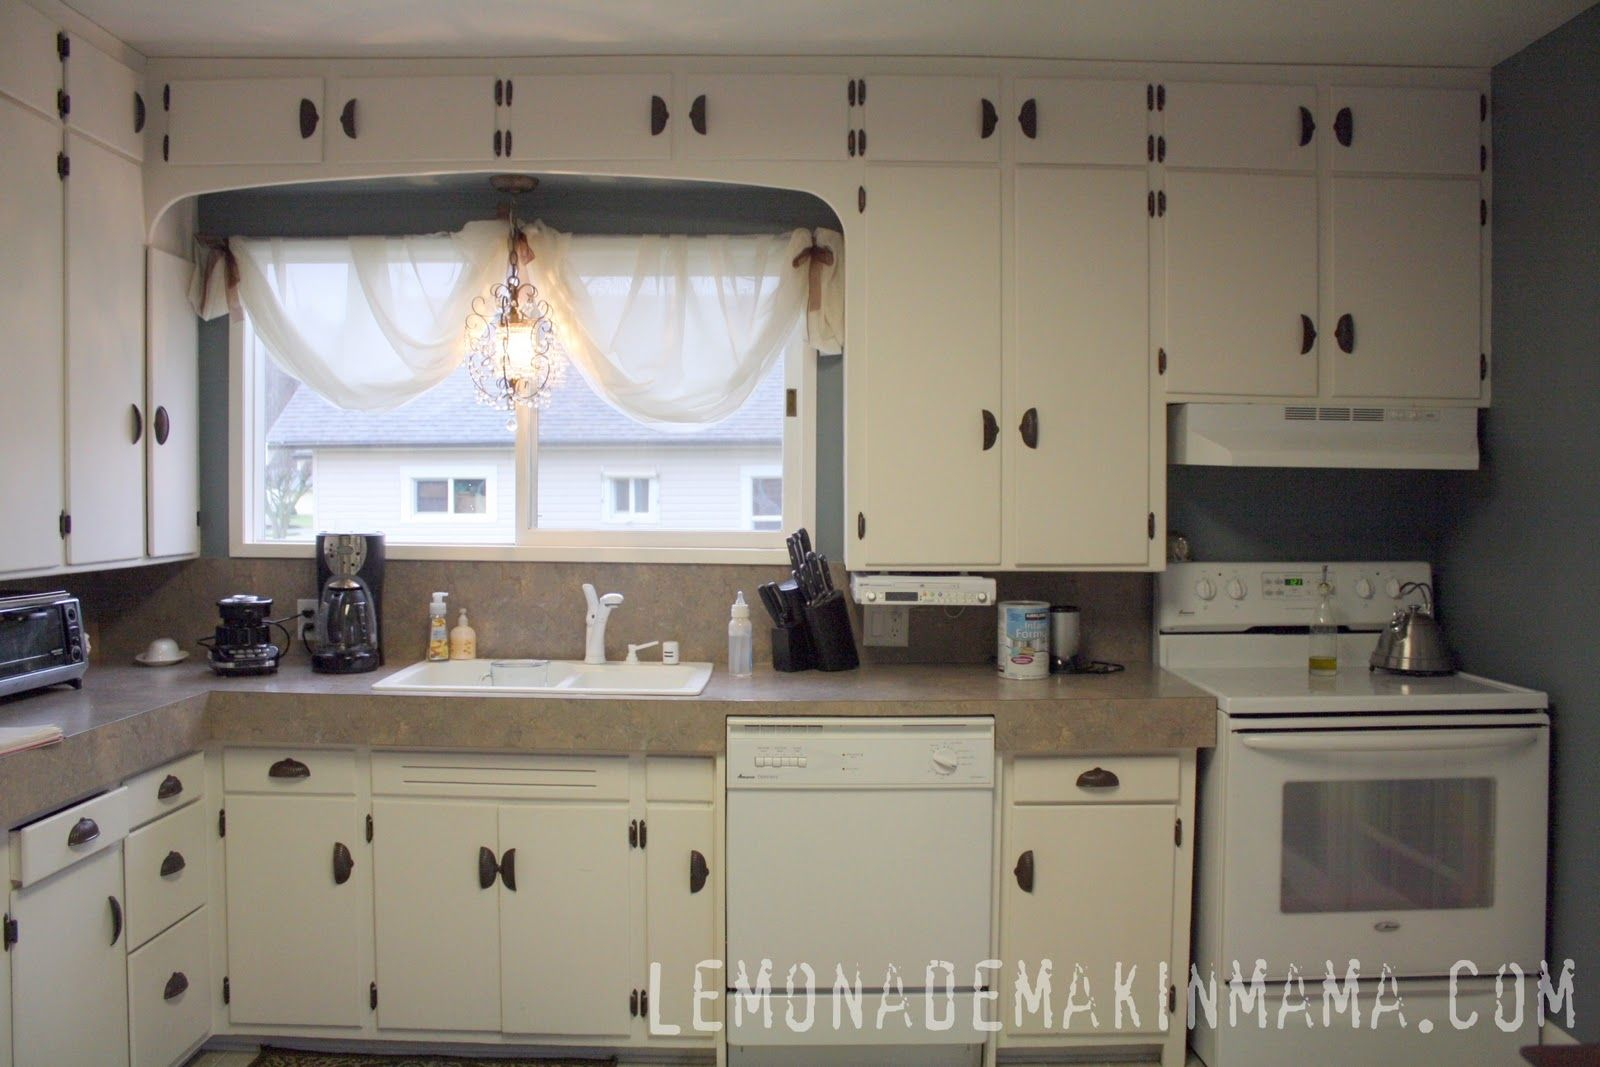 Cabinet Knobs White Cabinets Oil Rubbed Bronze Hardware ...